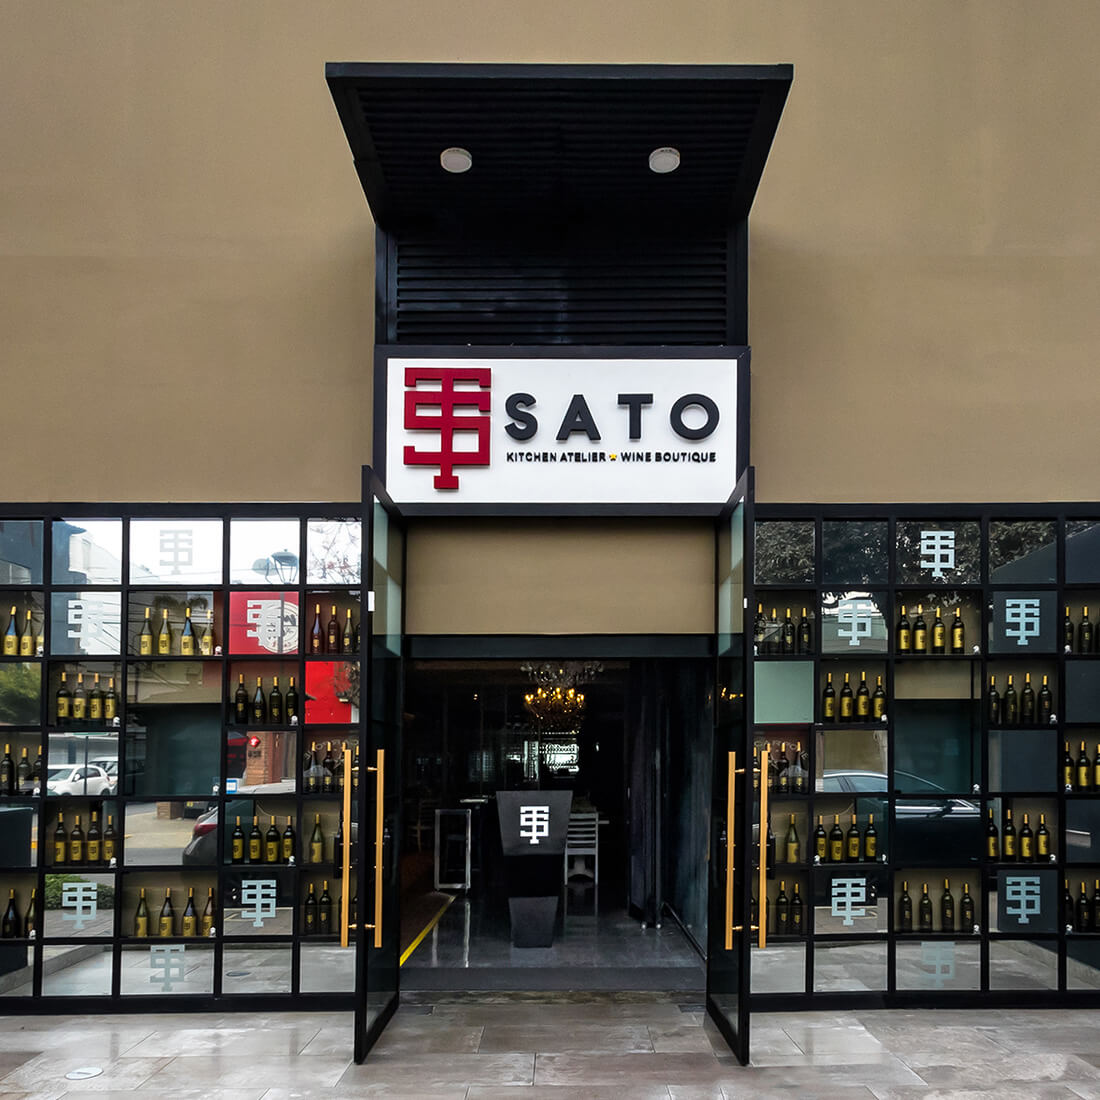 SATO KITCHEN ATELIER & WINE BOUTIQUE Restaurant - and Peruvian Food FUSION - SAN ISIDRO - MESA 24/7 Guide | LIMA - Peru